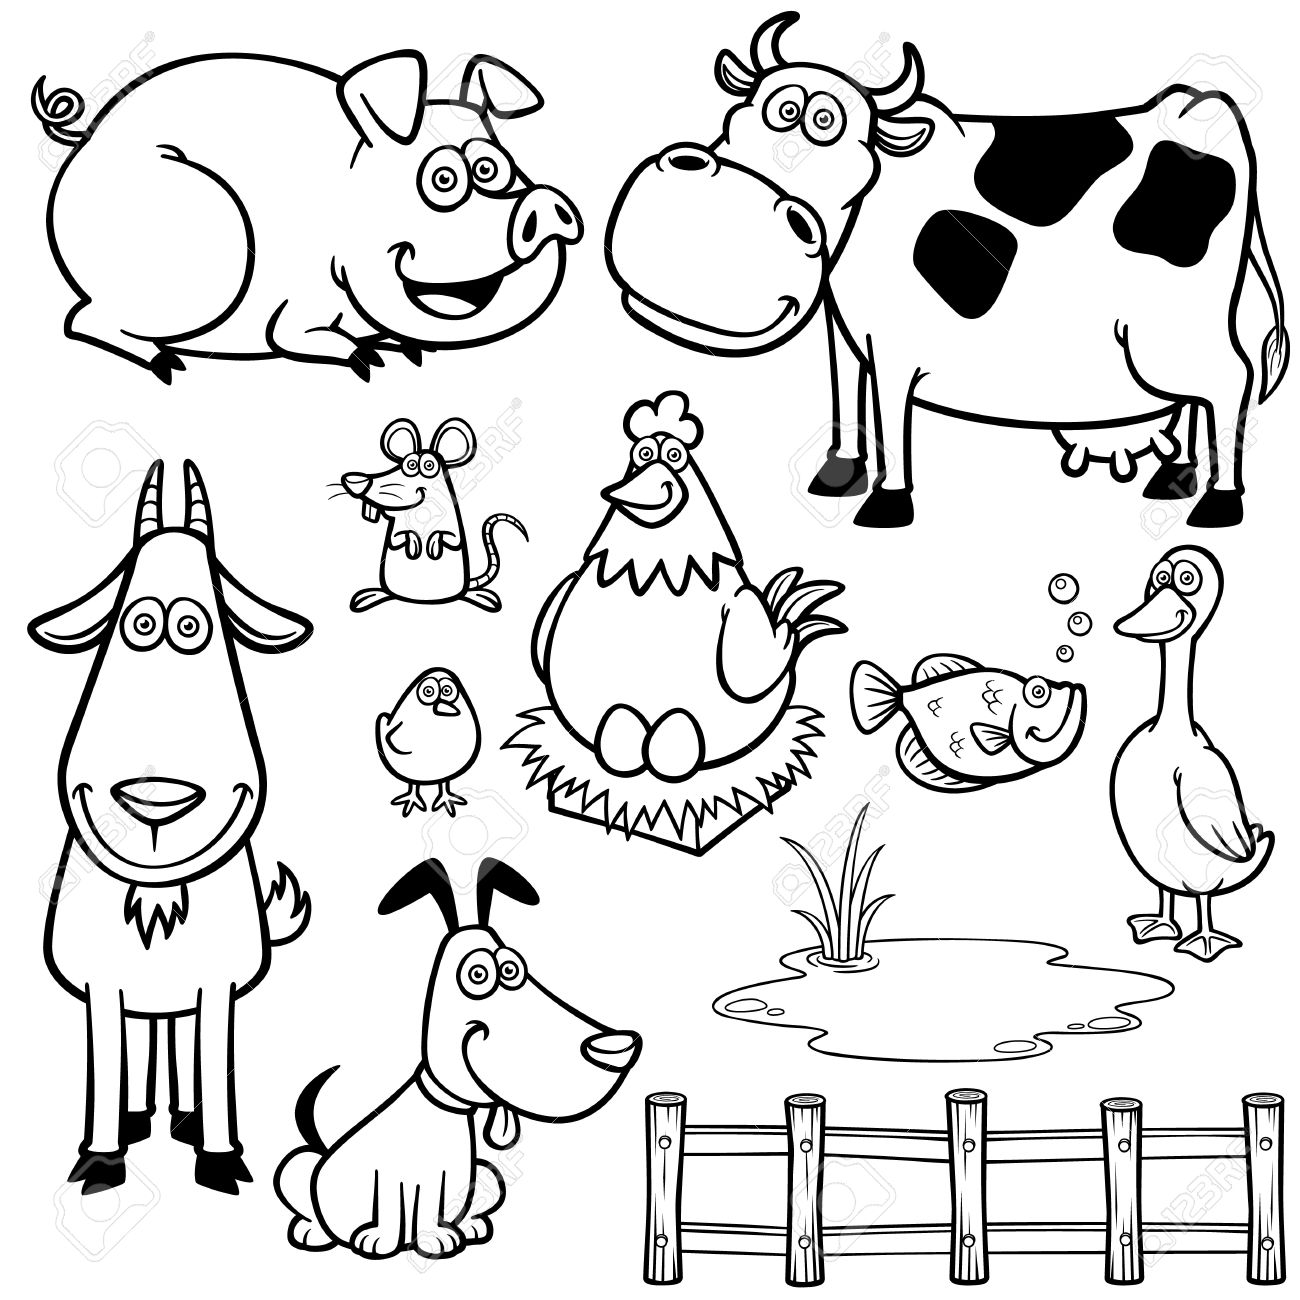 Vector Illustration of Farm Animals cartoon - Coloring book